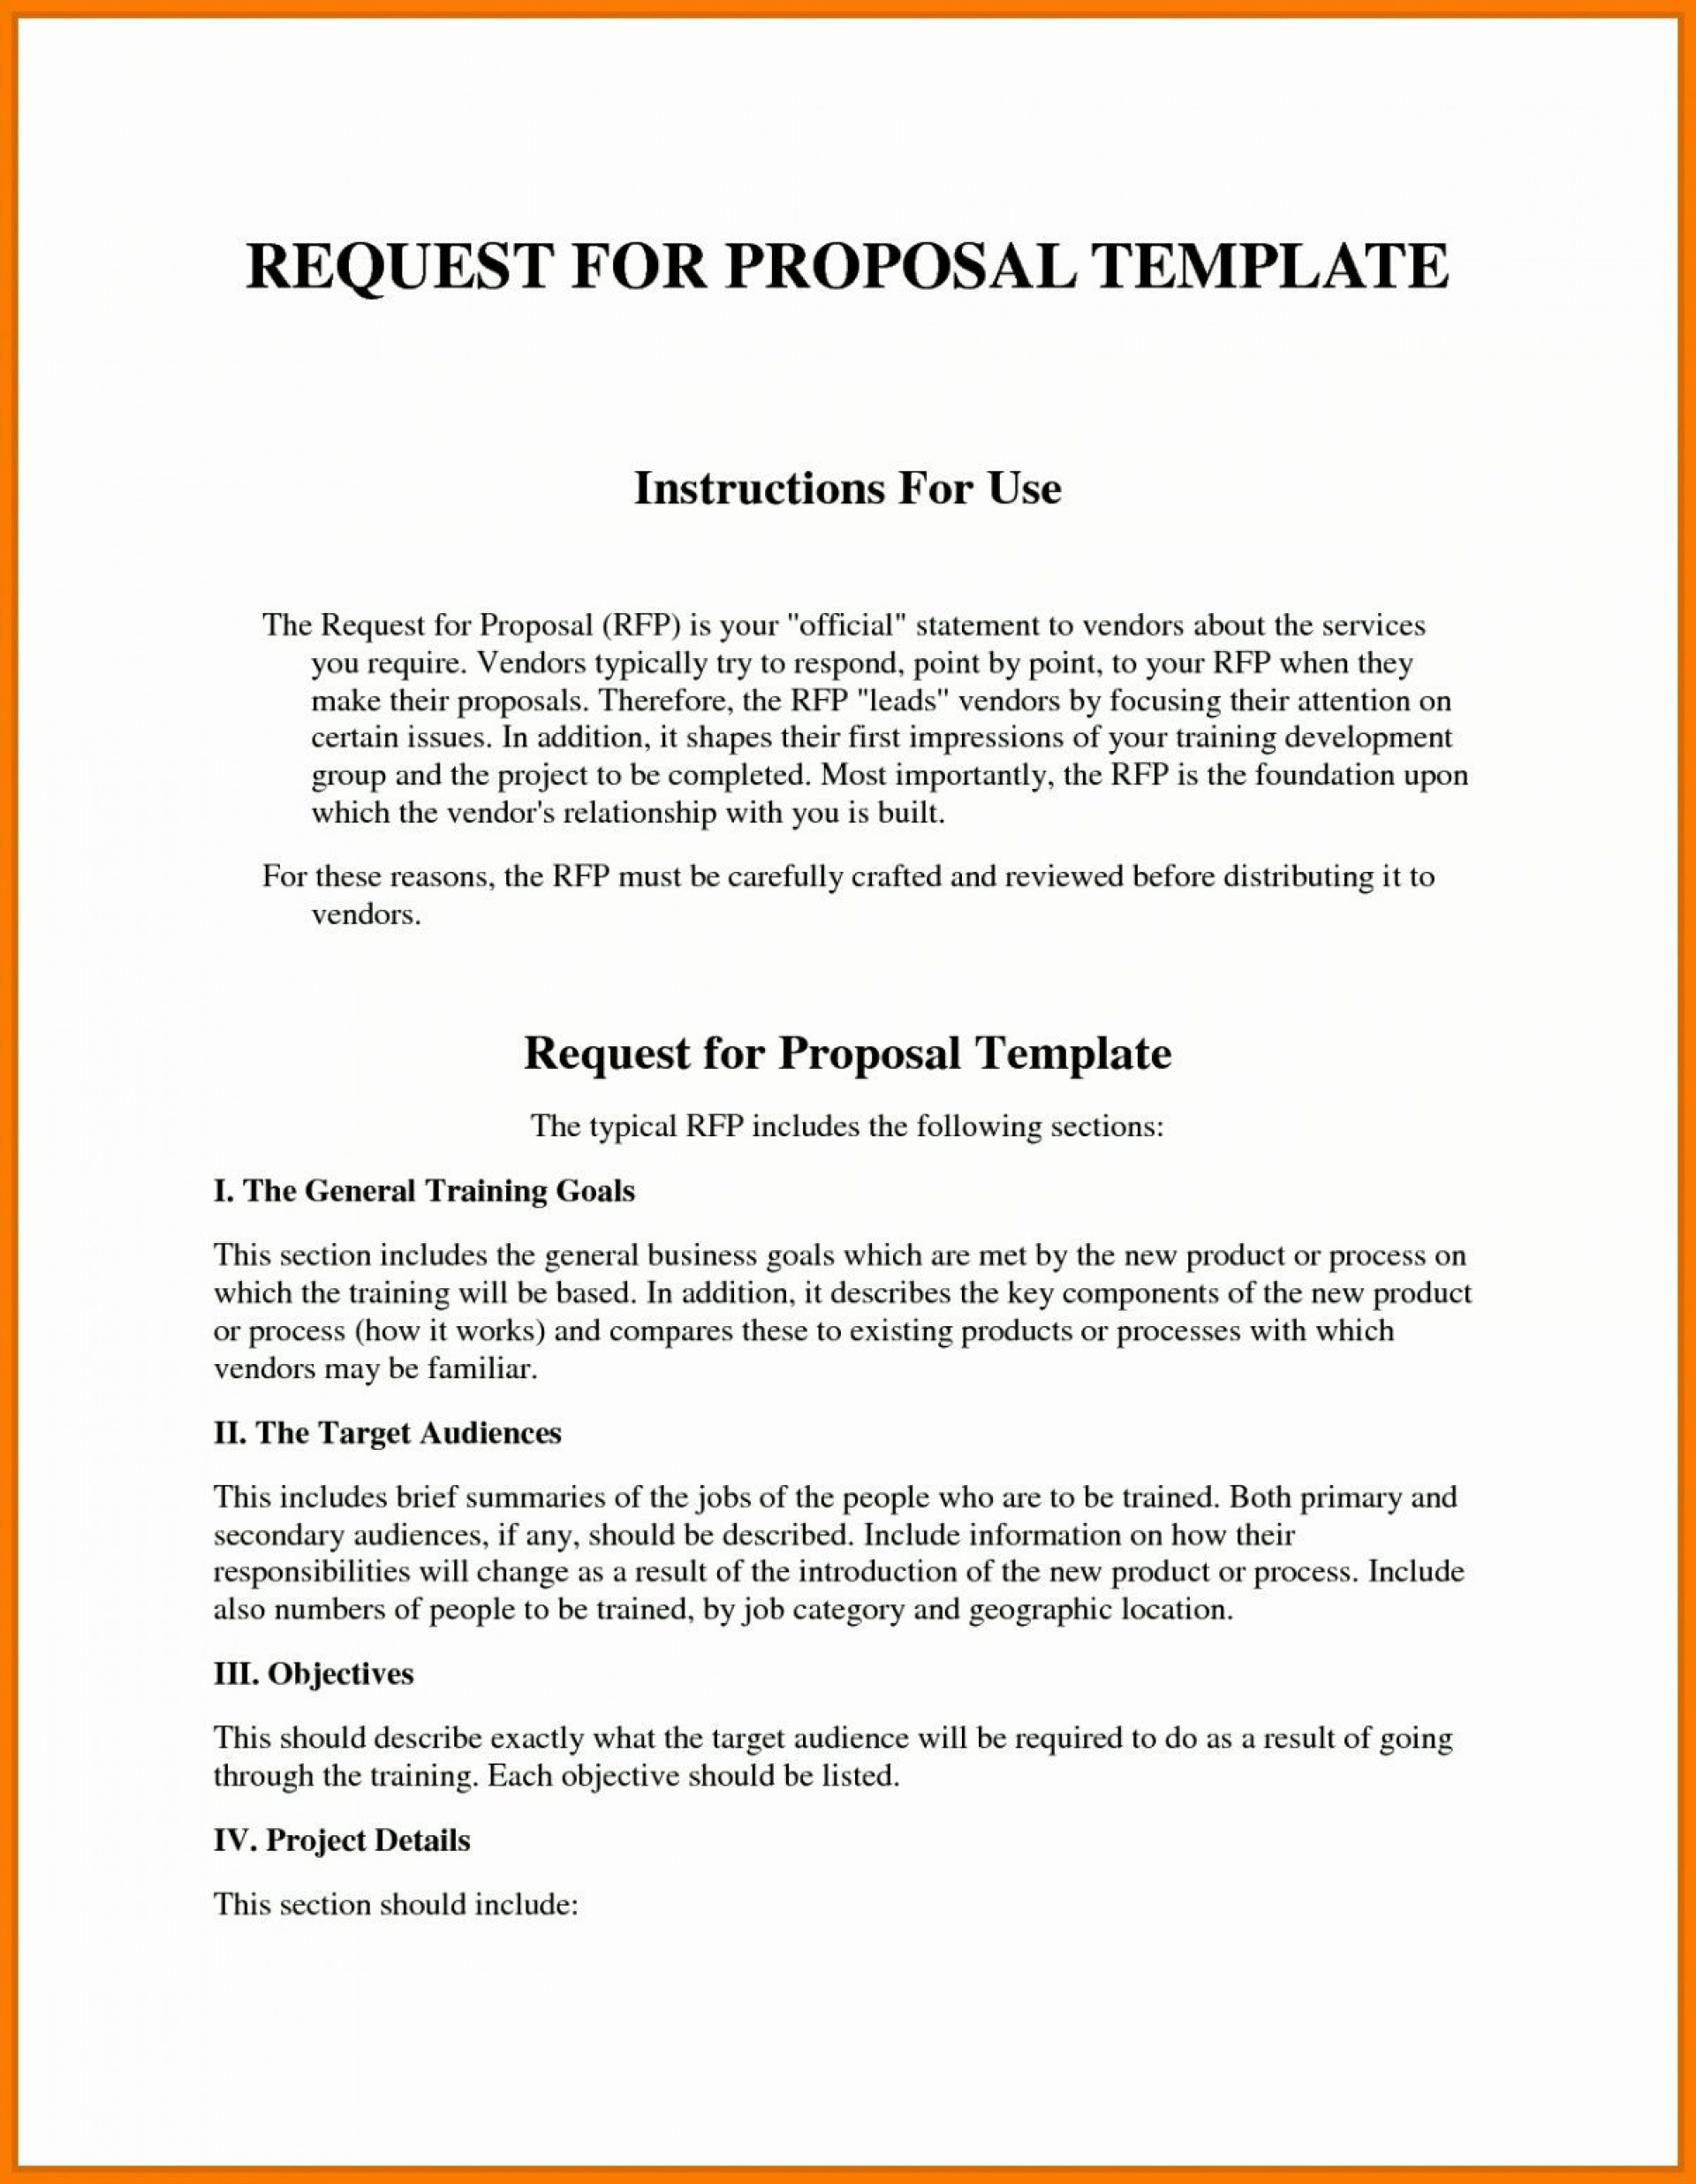 006 Outstanding Request For Proposal Template Excel Design 1920